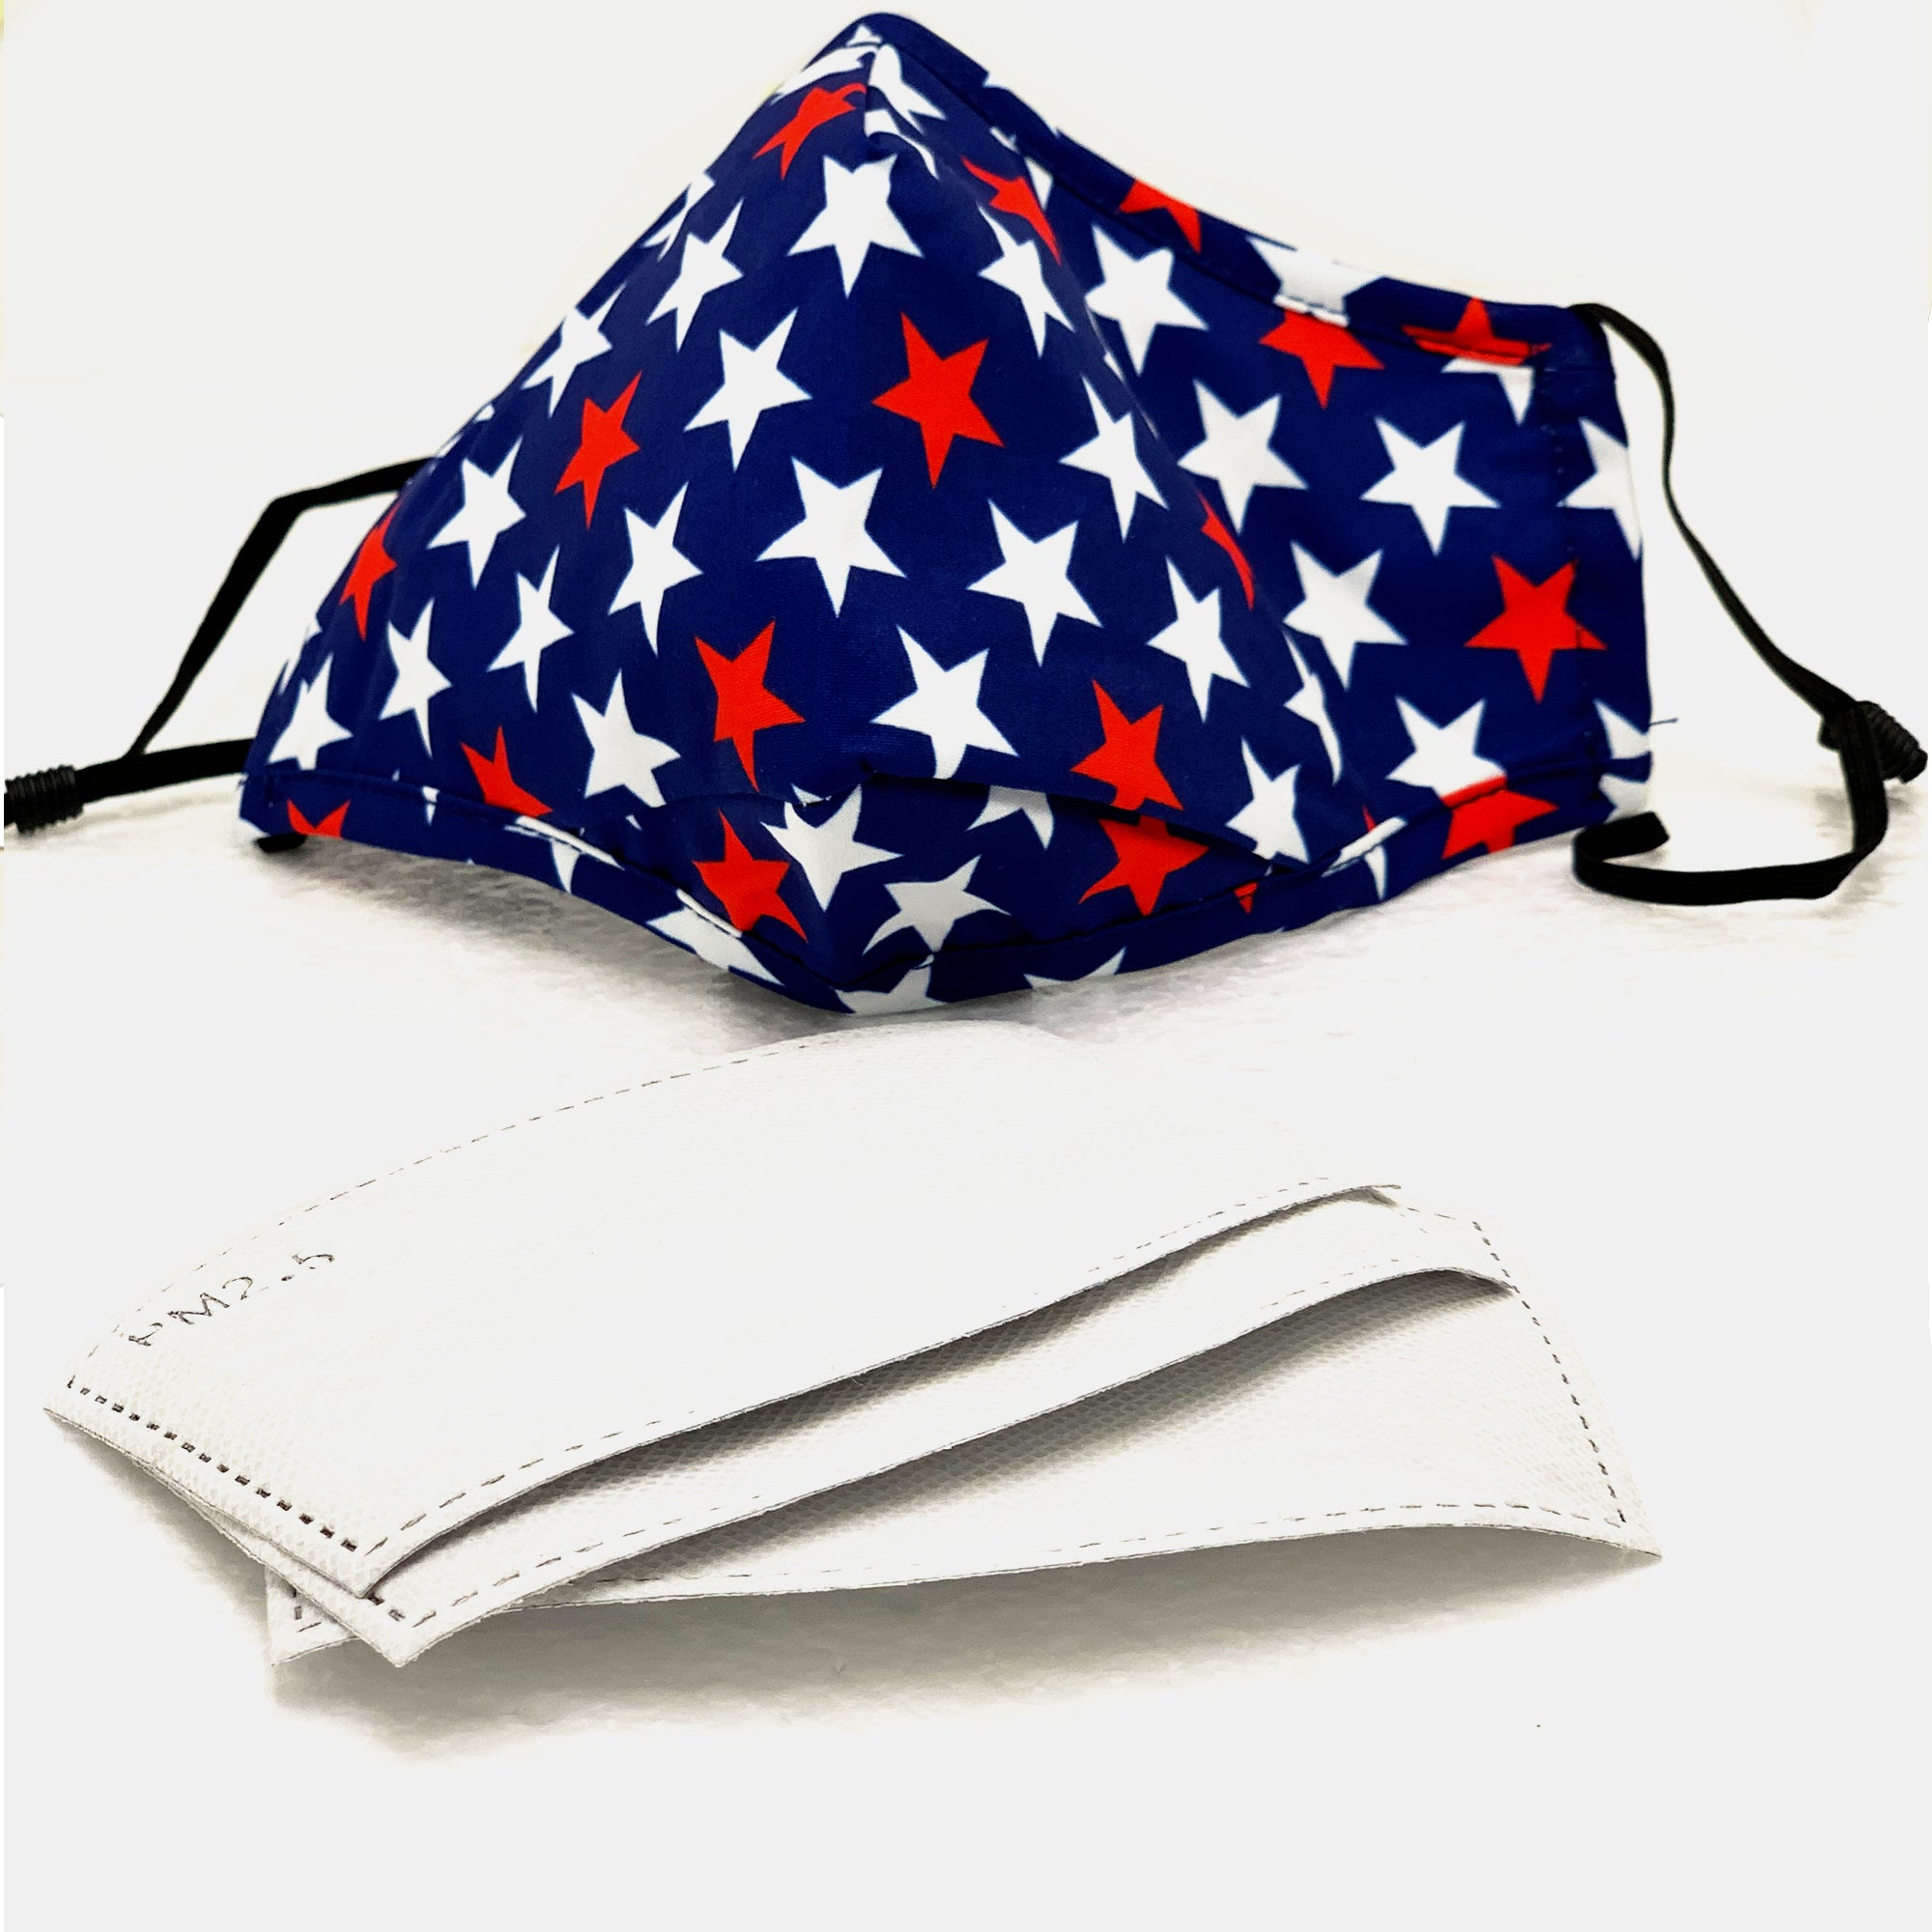 3D Cotton Washable Face Mask with Filter Pocket w/ 3 filters (Star Designs)